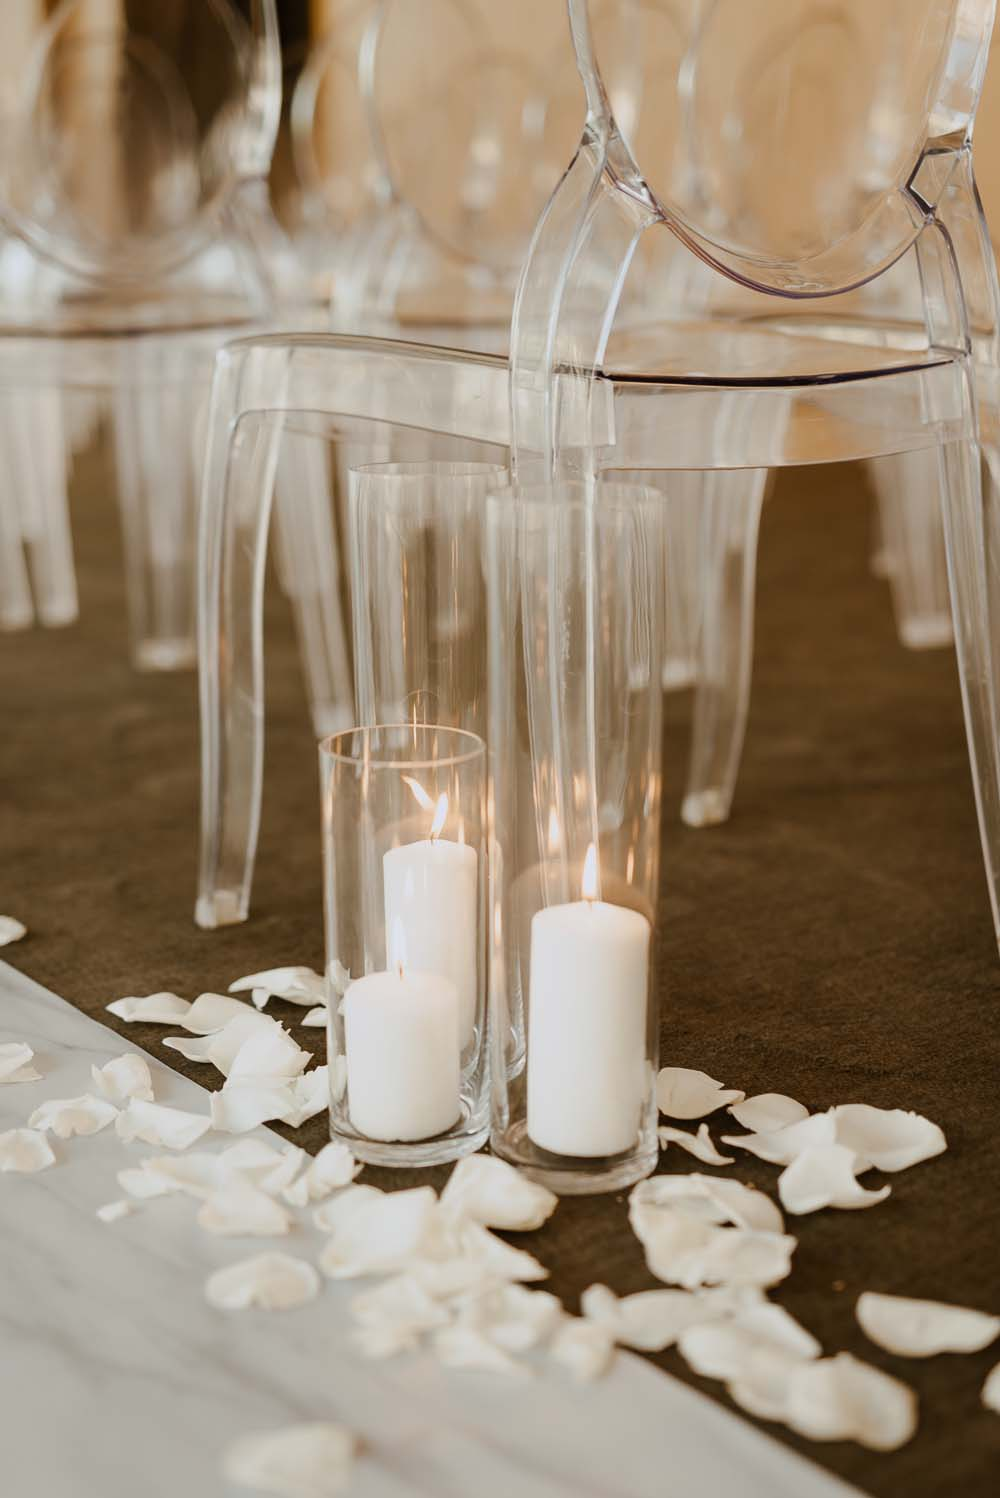 An Opulent Wedding At The Royal Conservatory Of Music - candle